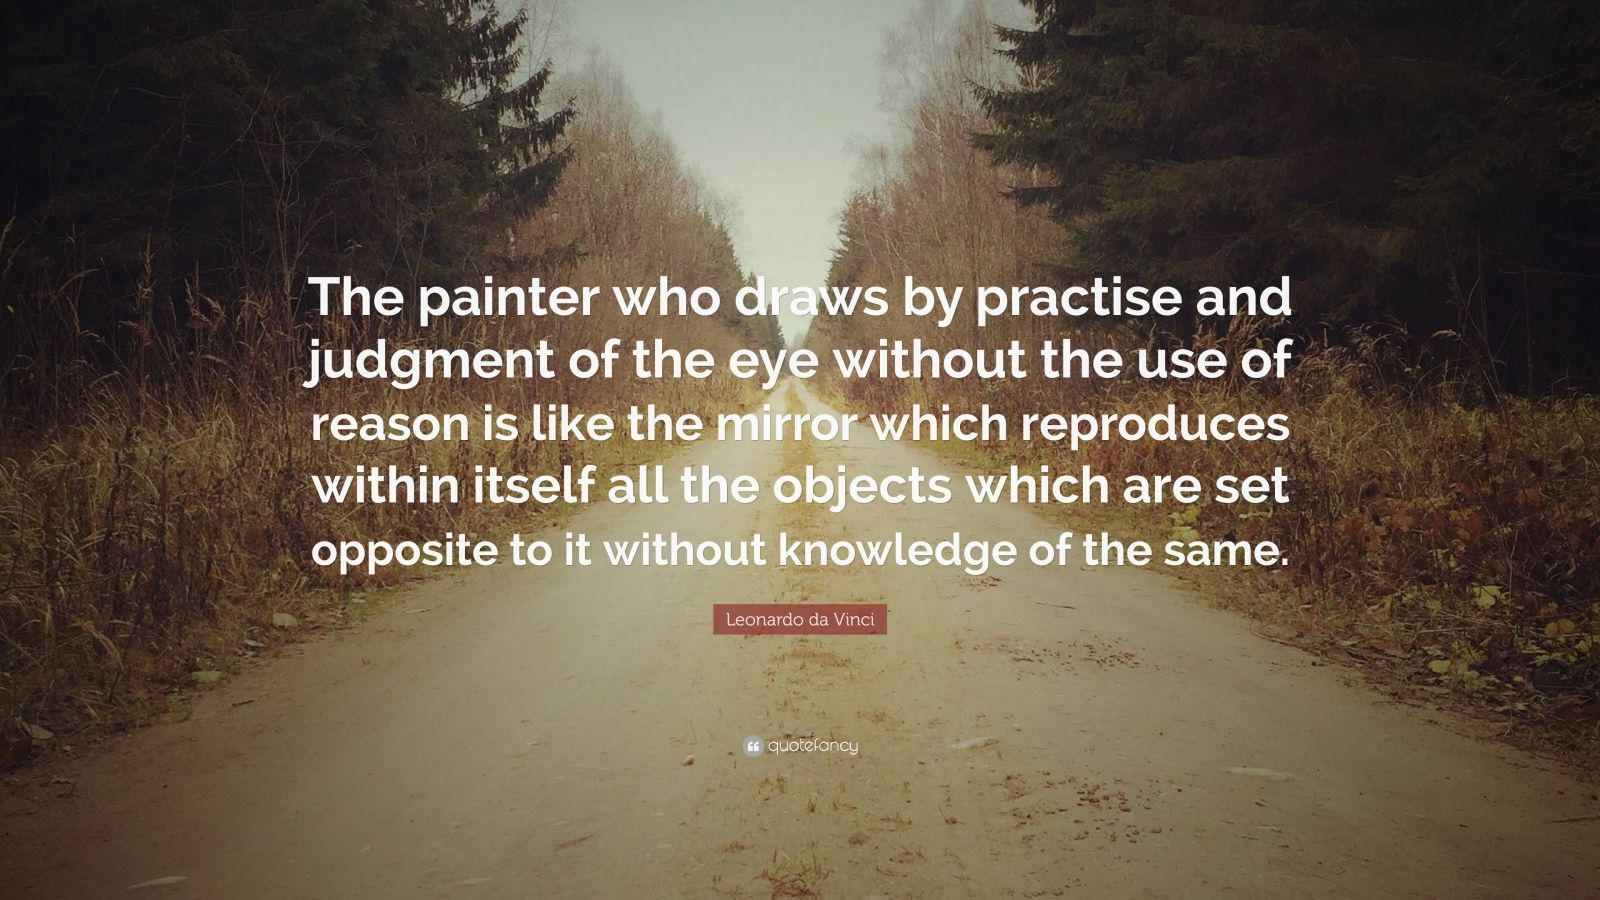 """Leonardo da Vinci Quote: """"The painter who draws by practise and judgment of the eye without the use of reason is like the mirror which reproduces within itself all the objects which are set opposite to it without knowledge of the same."""""""